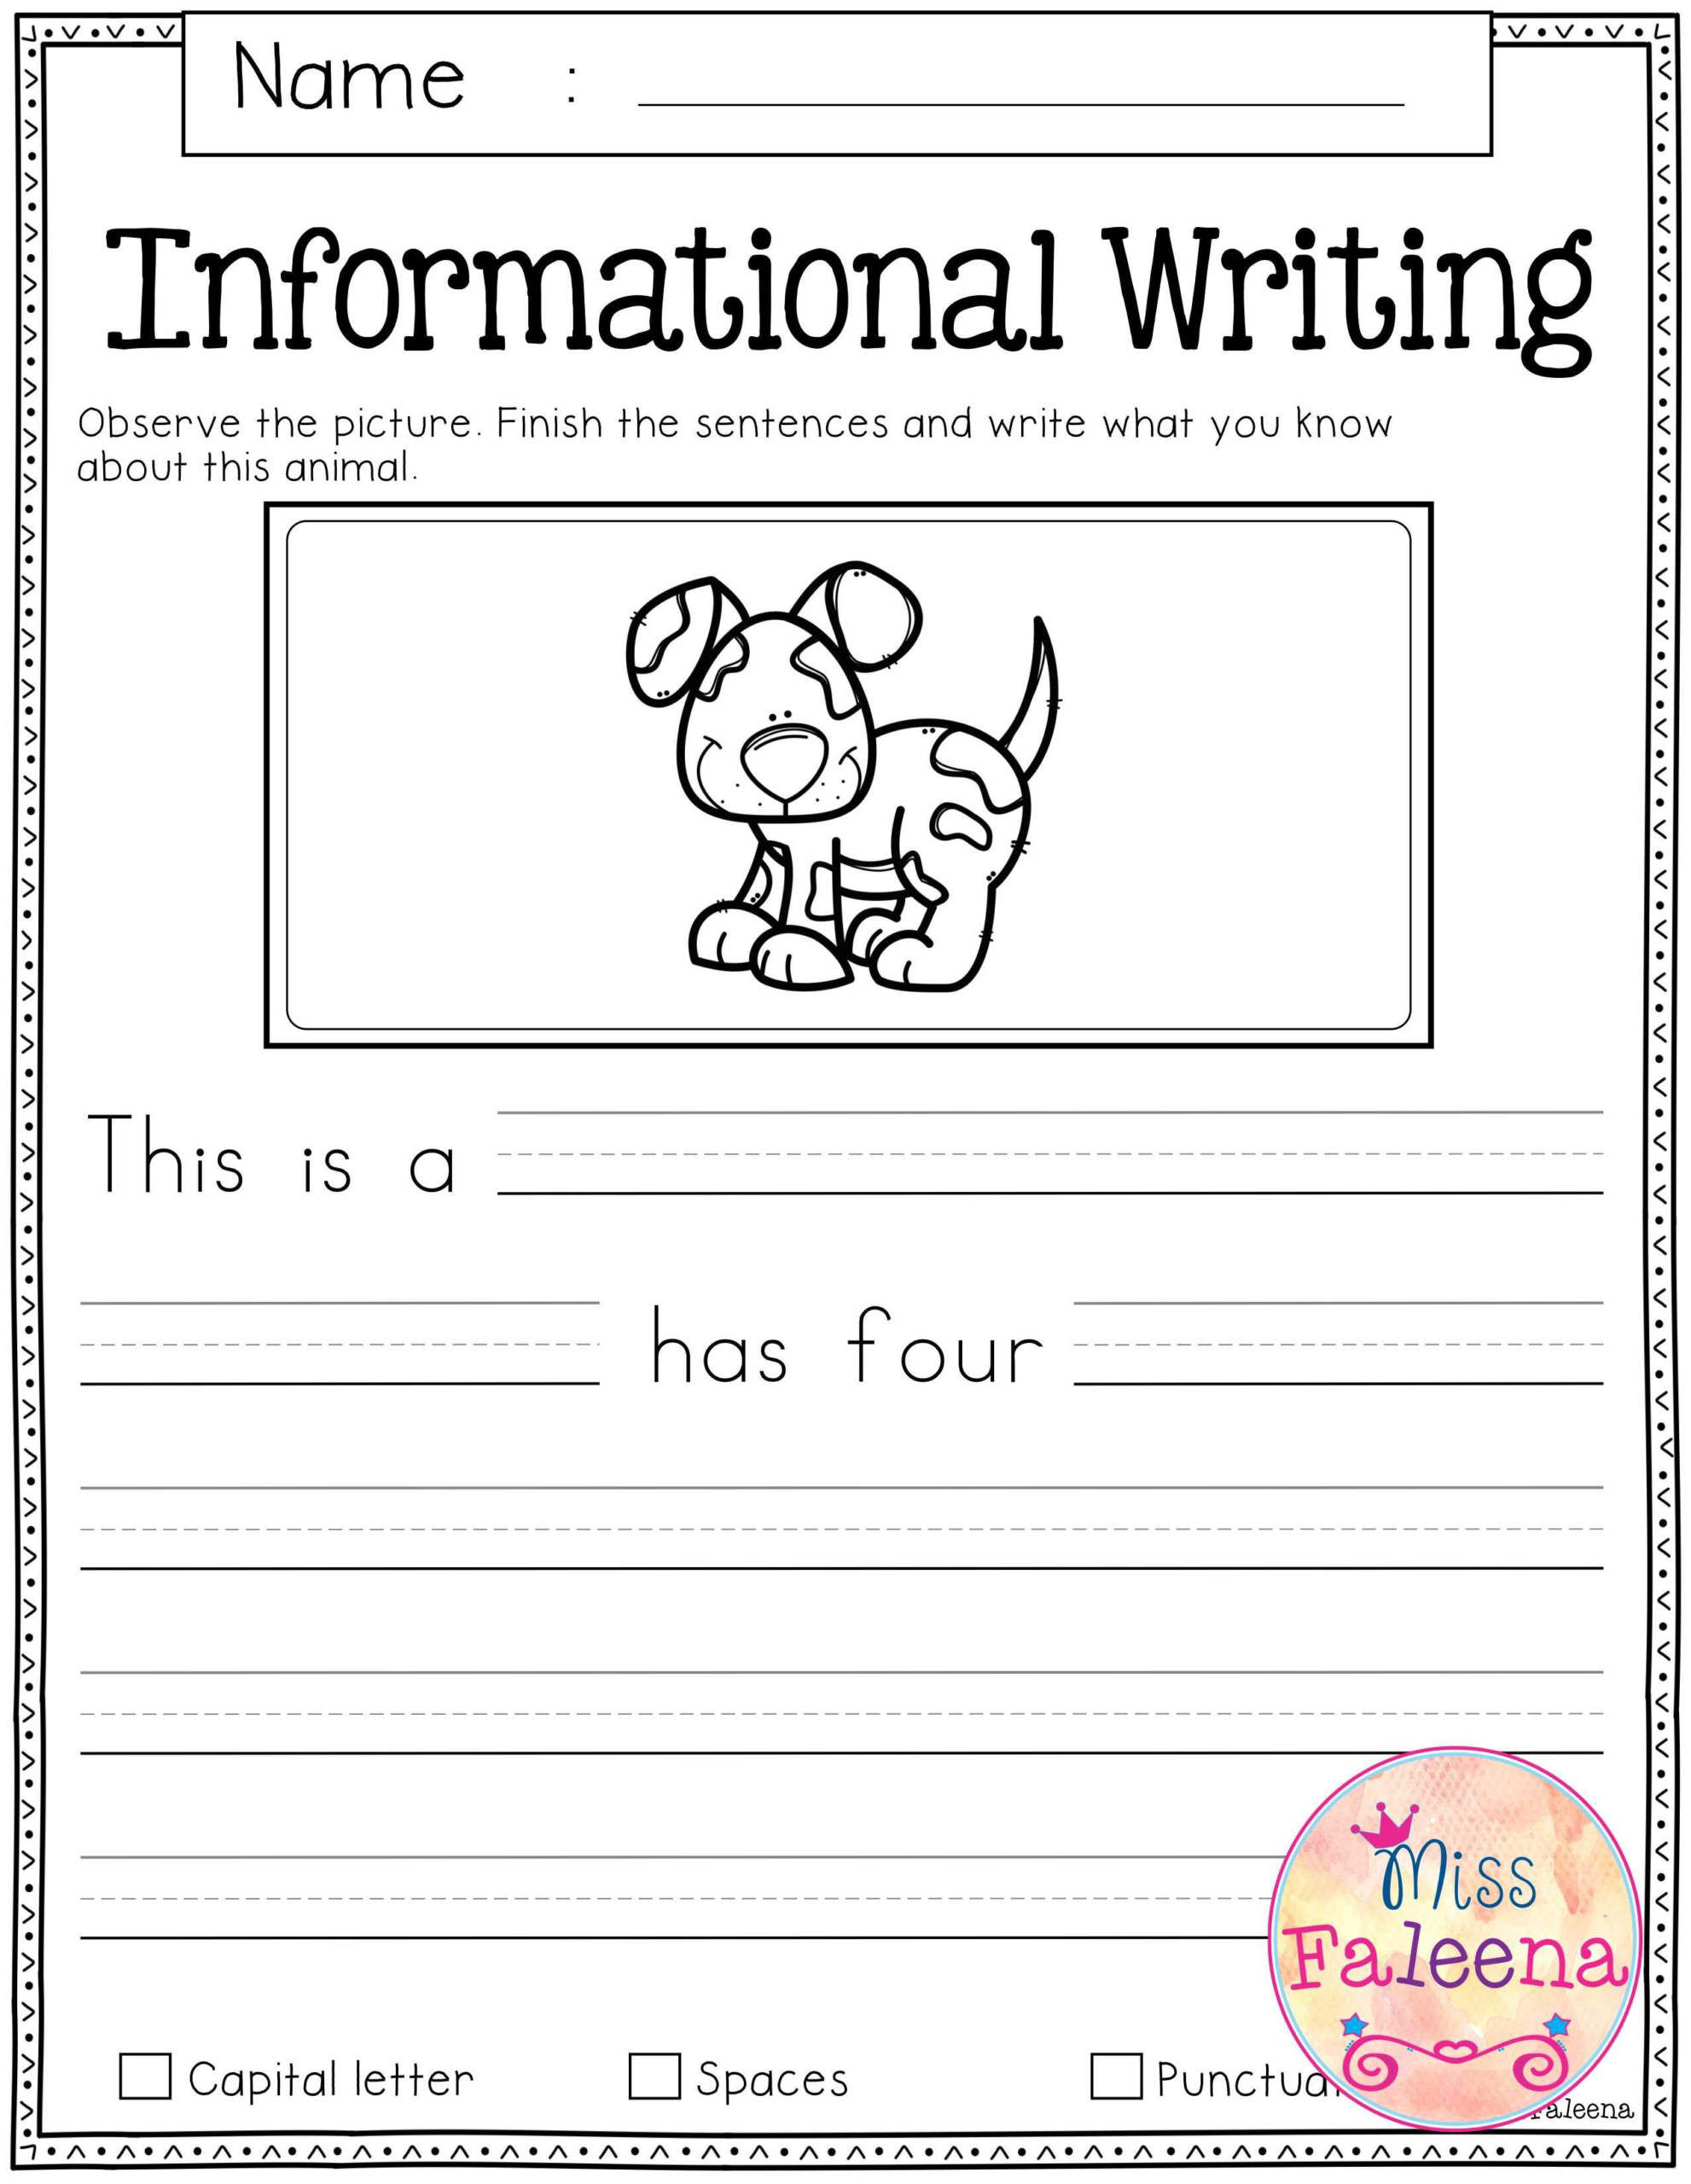 Free Writing Prompt Worksheets For 2nd Grade